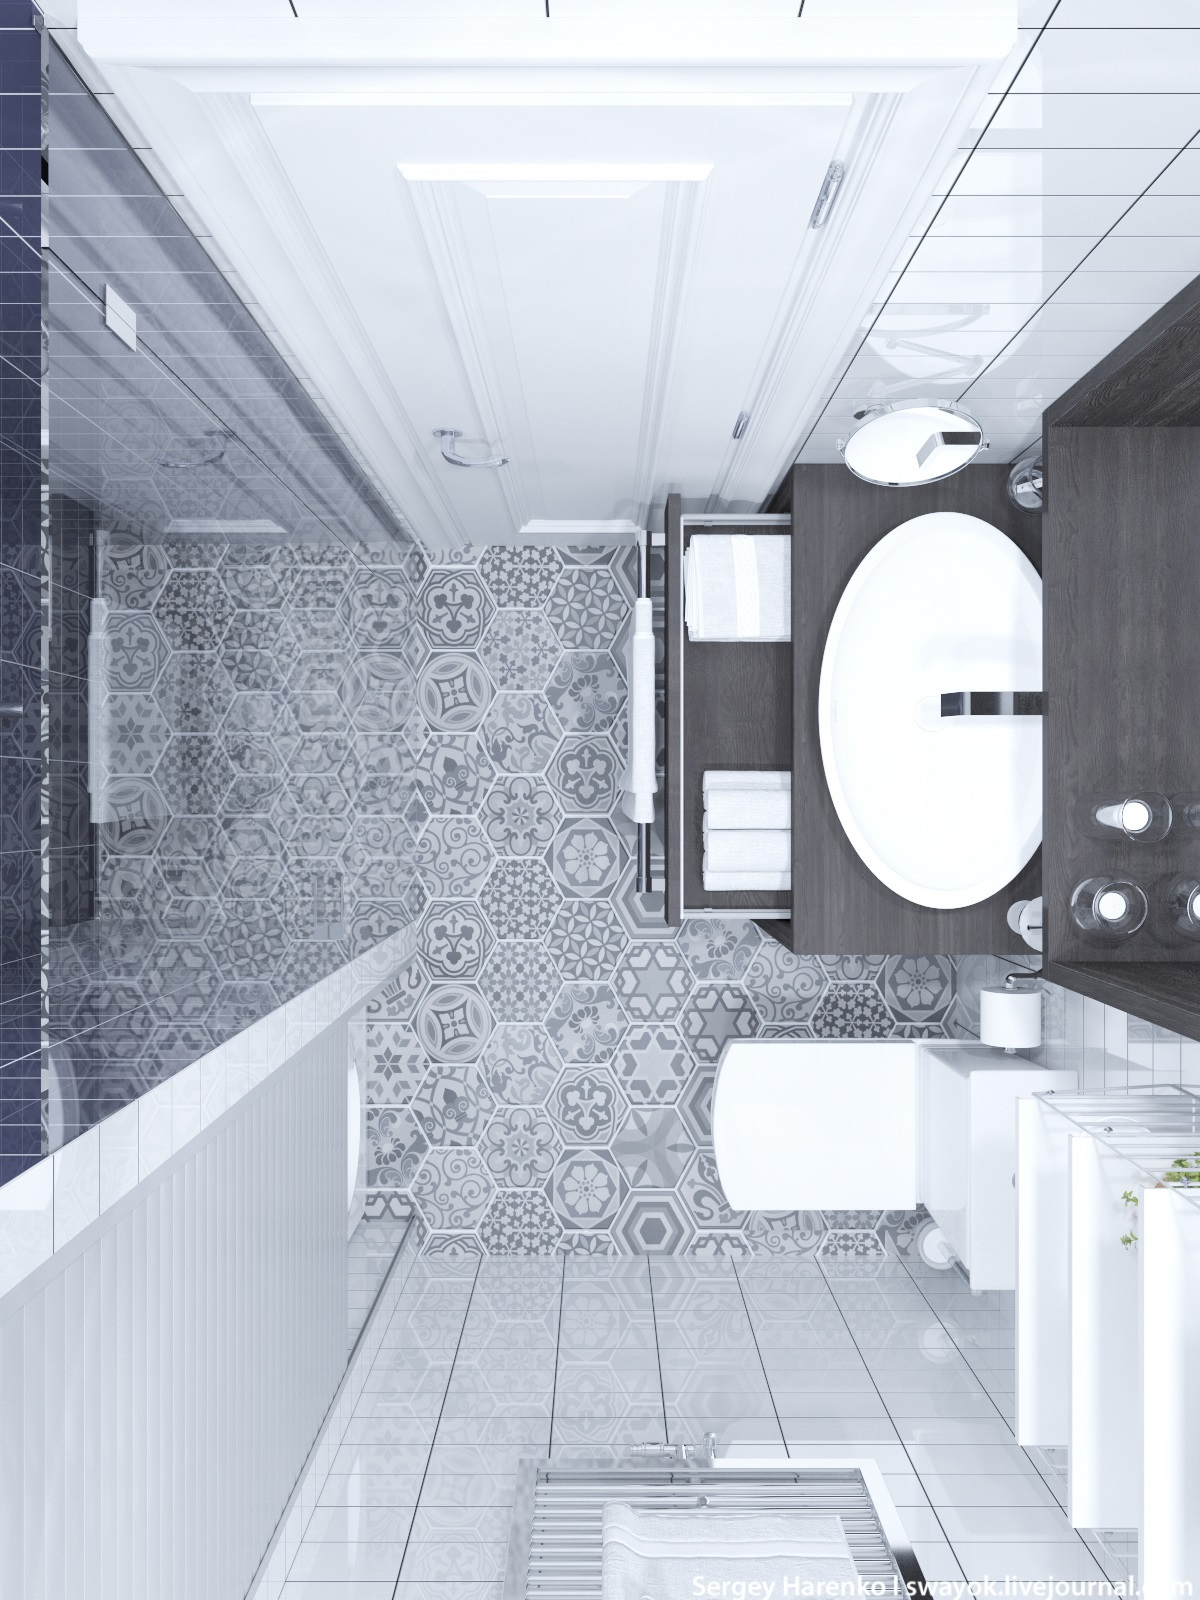 Elaborate Tile Bathroom - 3 beautiful scandinavian style interiors